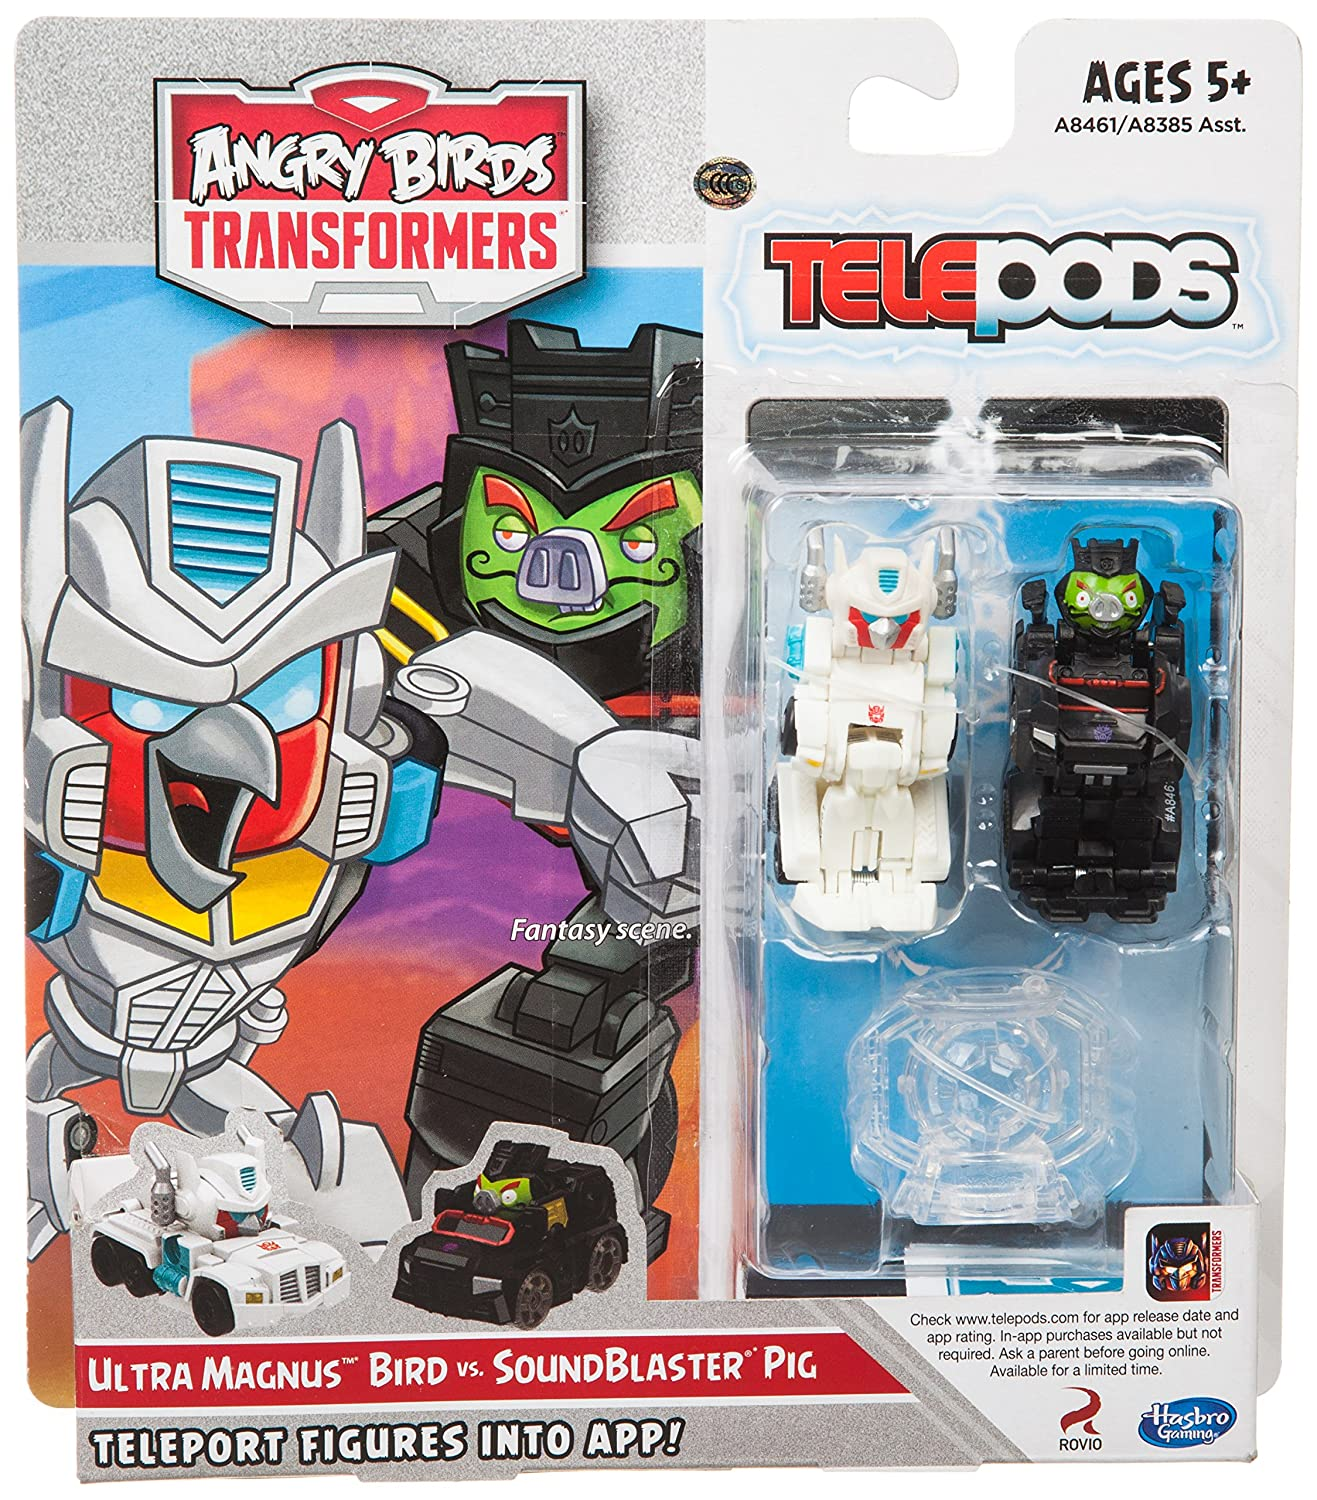 Angry Birds Transformers Telepods Ultra Magnus Bird vs. SoundBlaster Figure Pack Hasbro